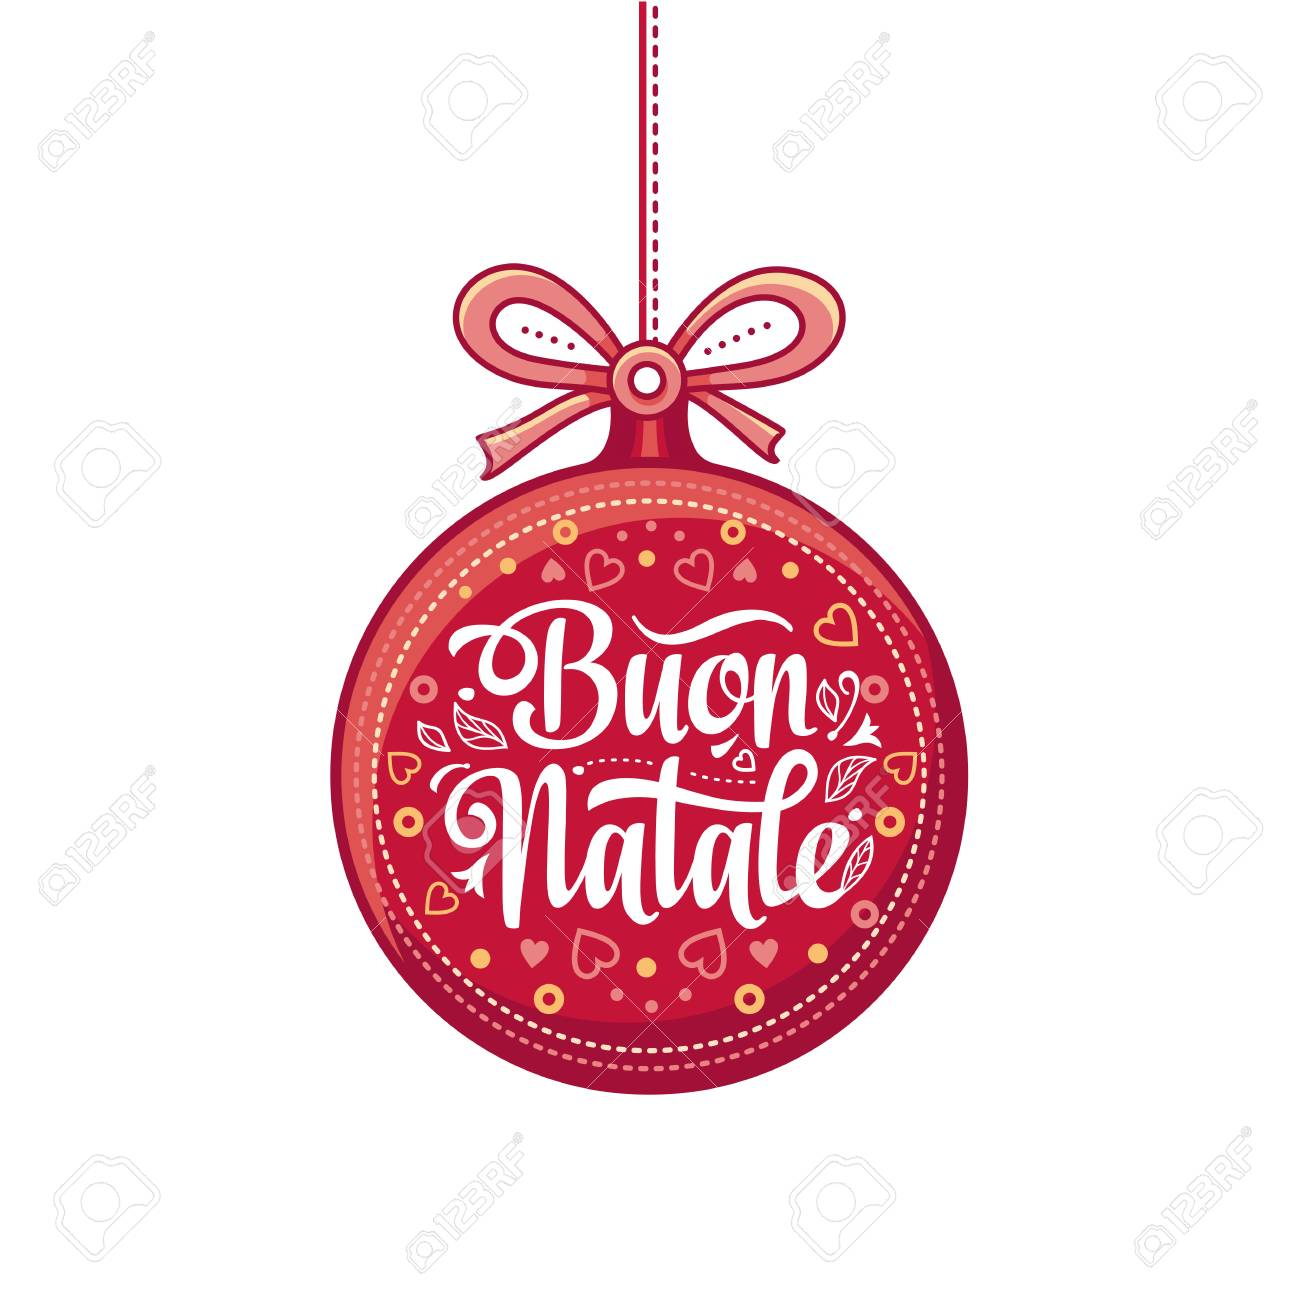 Buon Natale Italia.Buon Natale Christmas Template Greeting Card Winter Holiday Royalty Free Cliparts Vectors And Stock Illustration Image 86209578